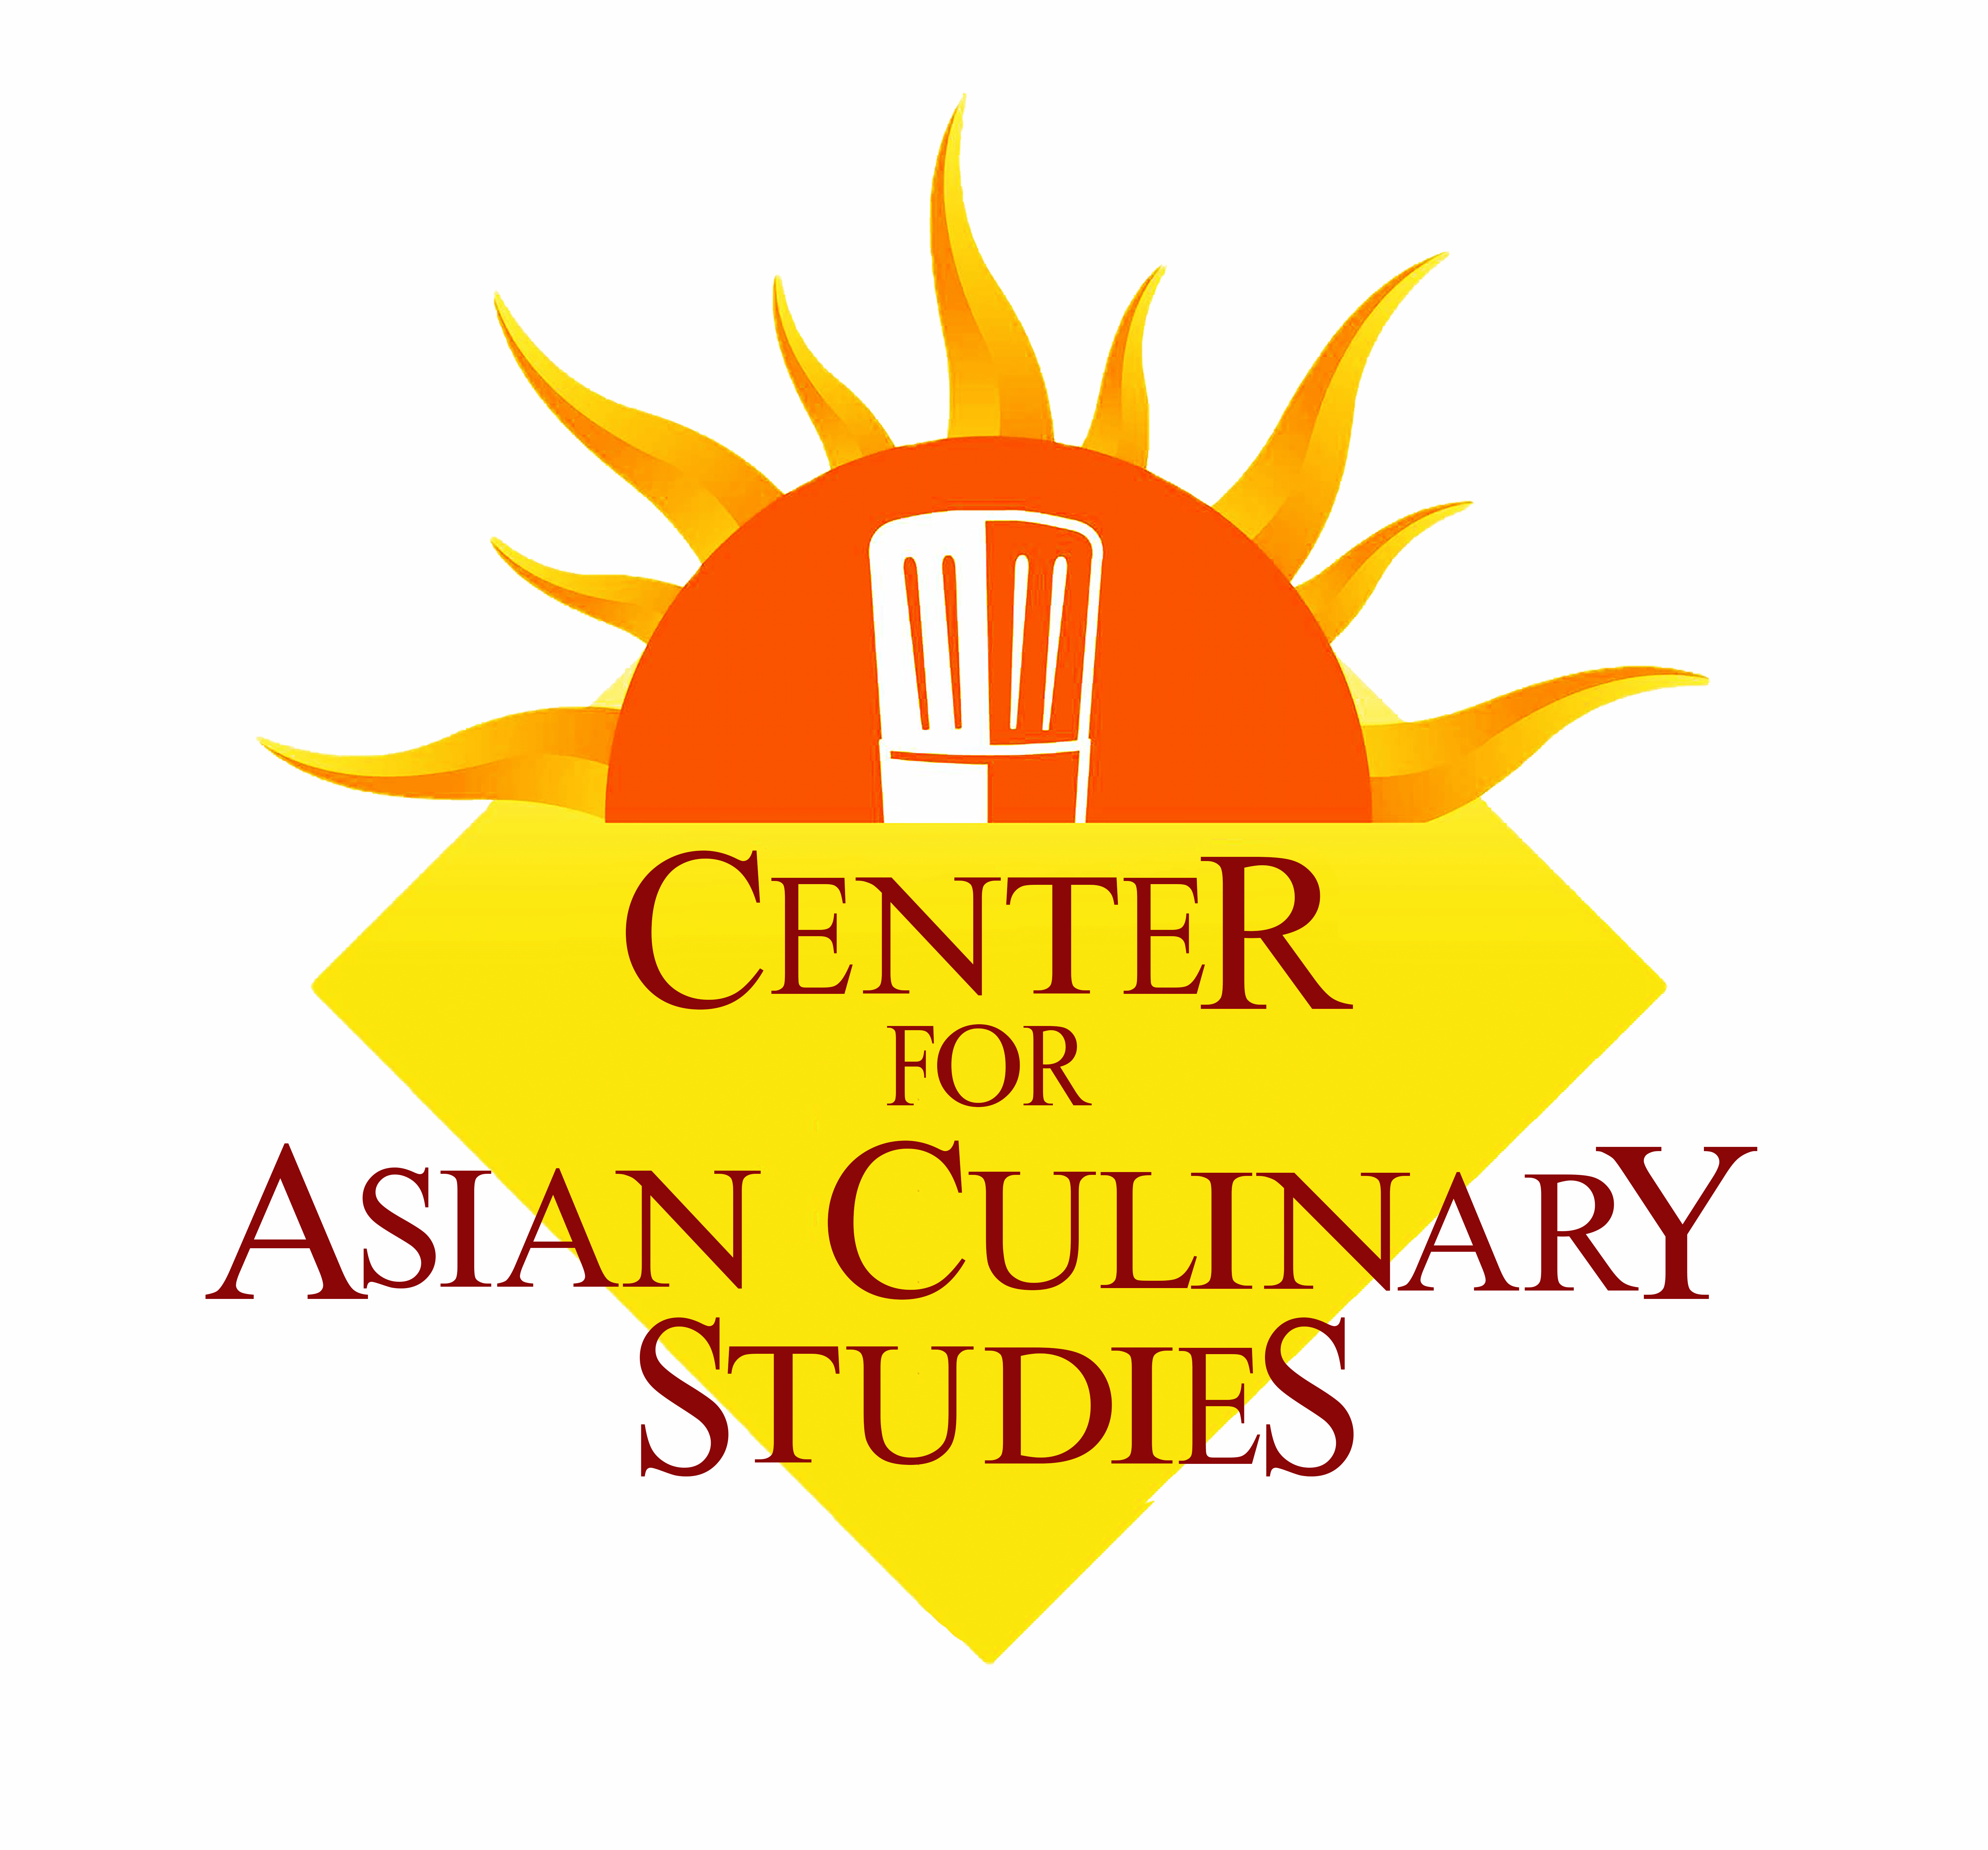 Center for Asian Culinary Studies, Inc. - Manila Logo